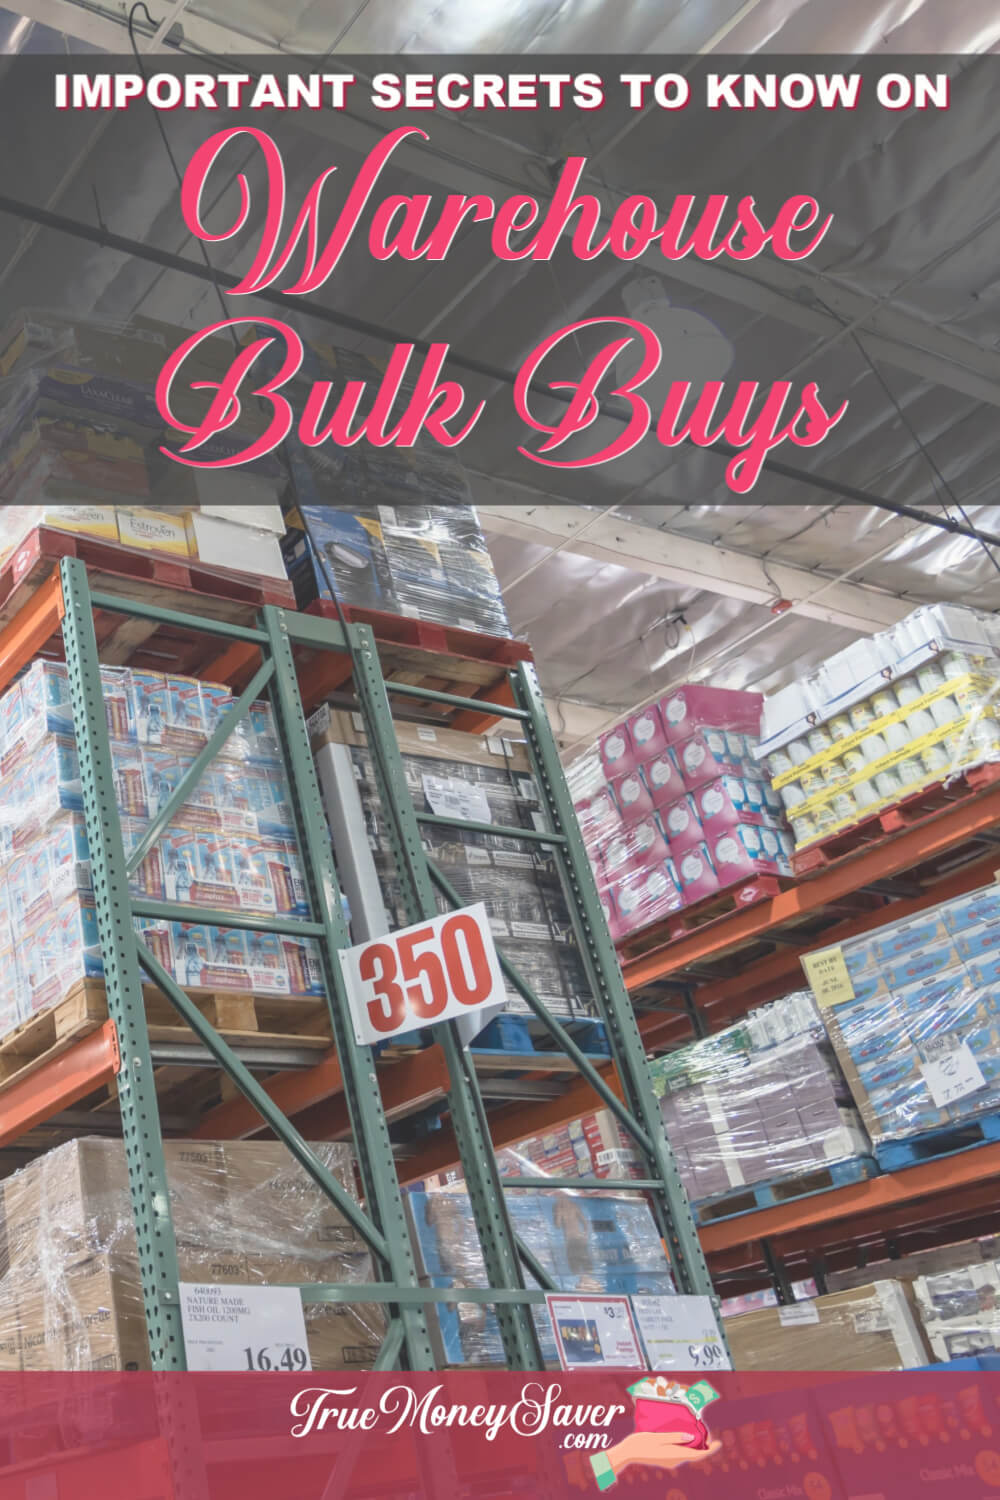 Did you know there are 5 Important Secrets about Crazy Bulk Buys at those Warehouse Stores? Learn all the tips so you don\'t waste your money! #truemoneysaver #warehouseclub #crazybulkbuys #bulkstore #bulk